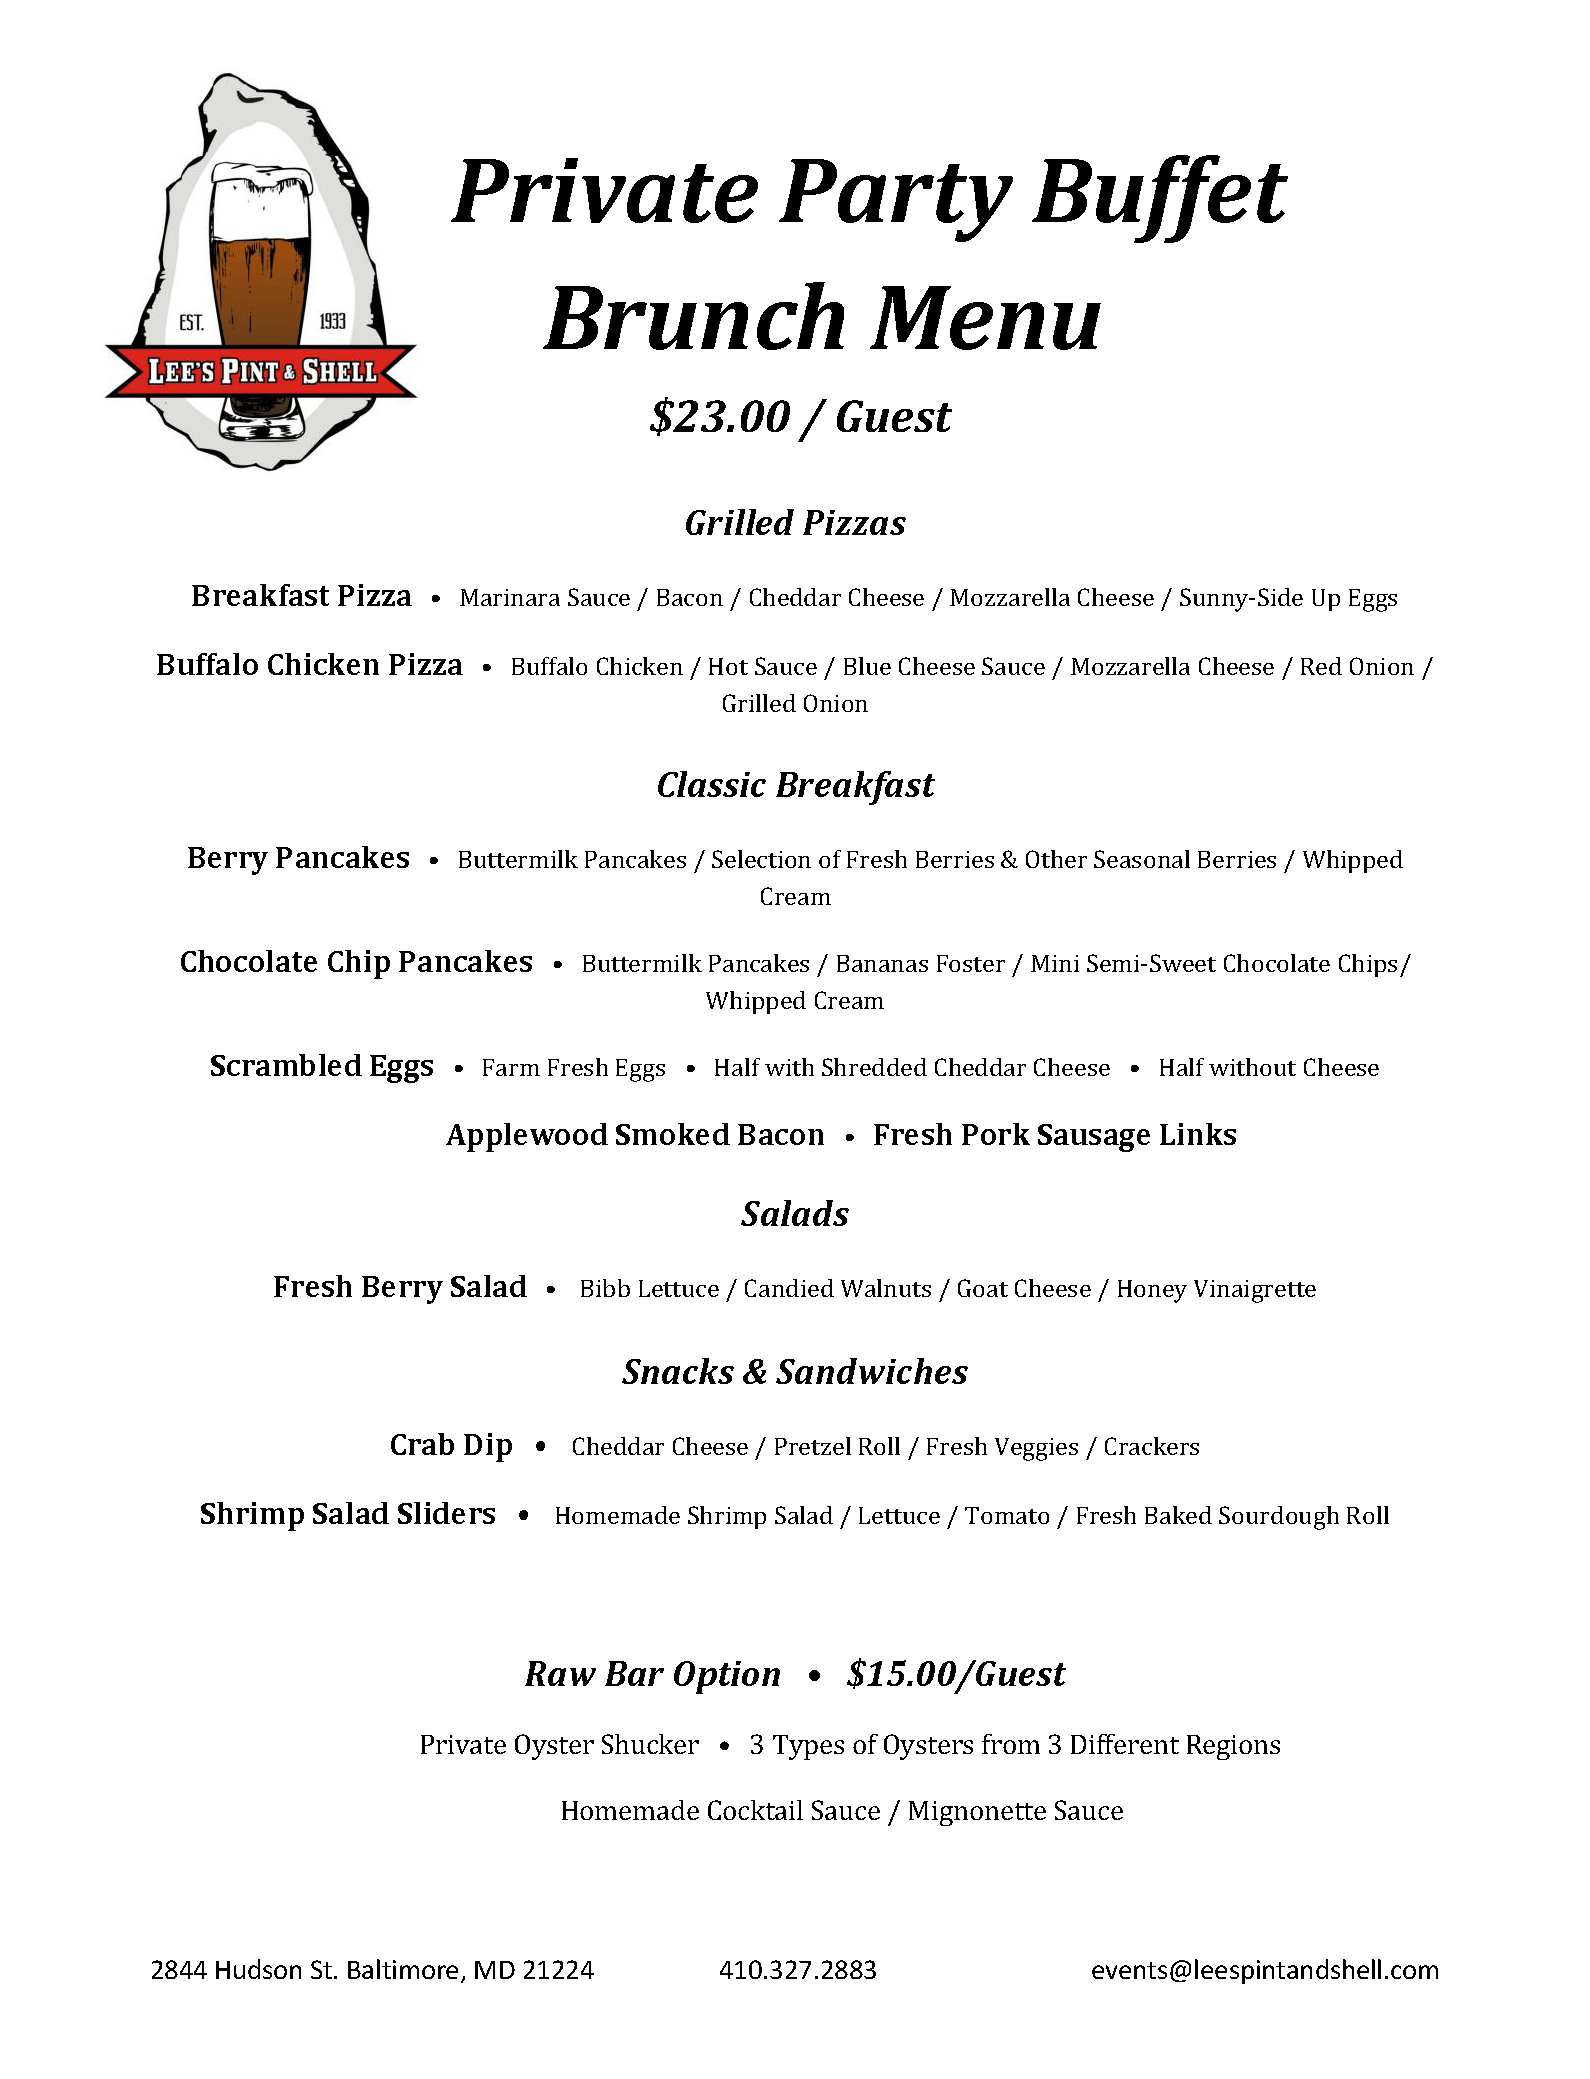 Private Party Brunch Buffet Menu.png